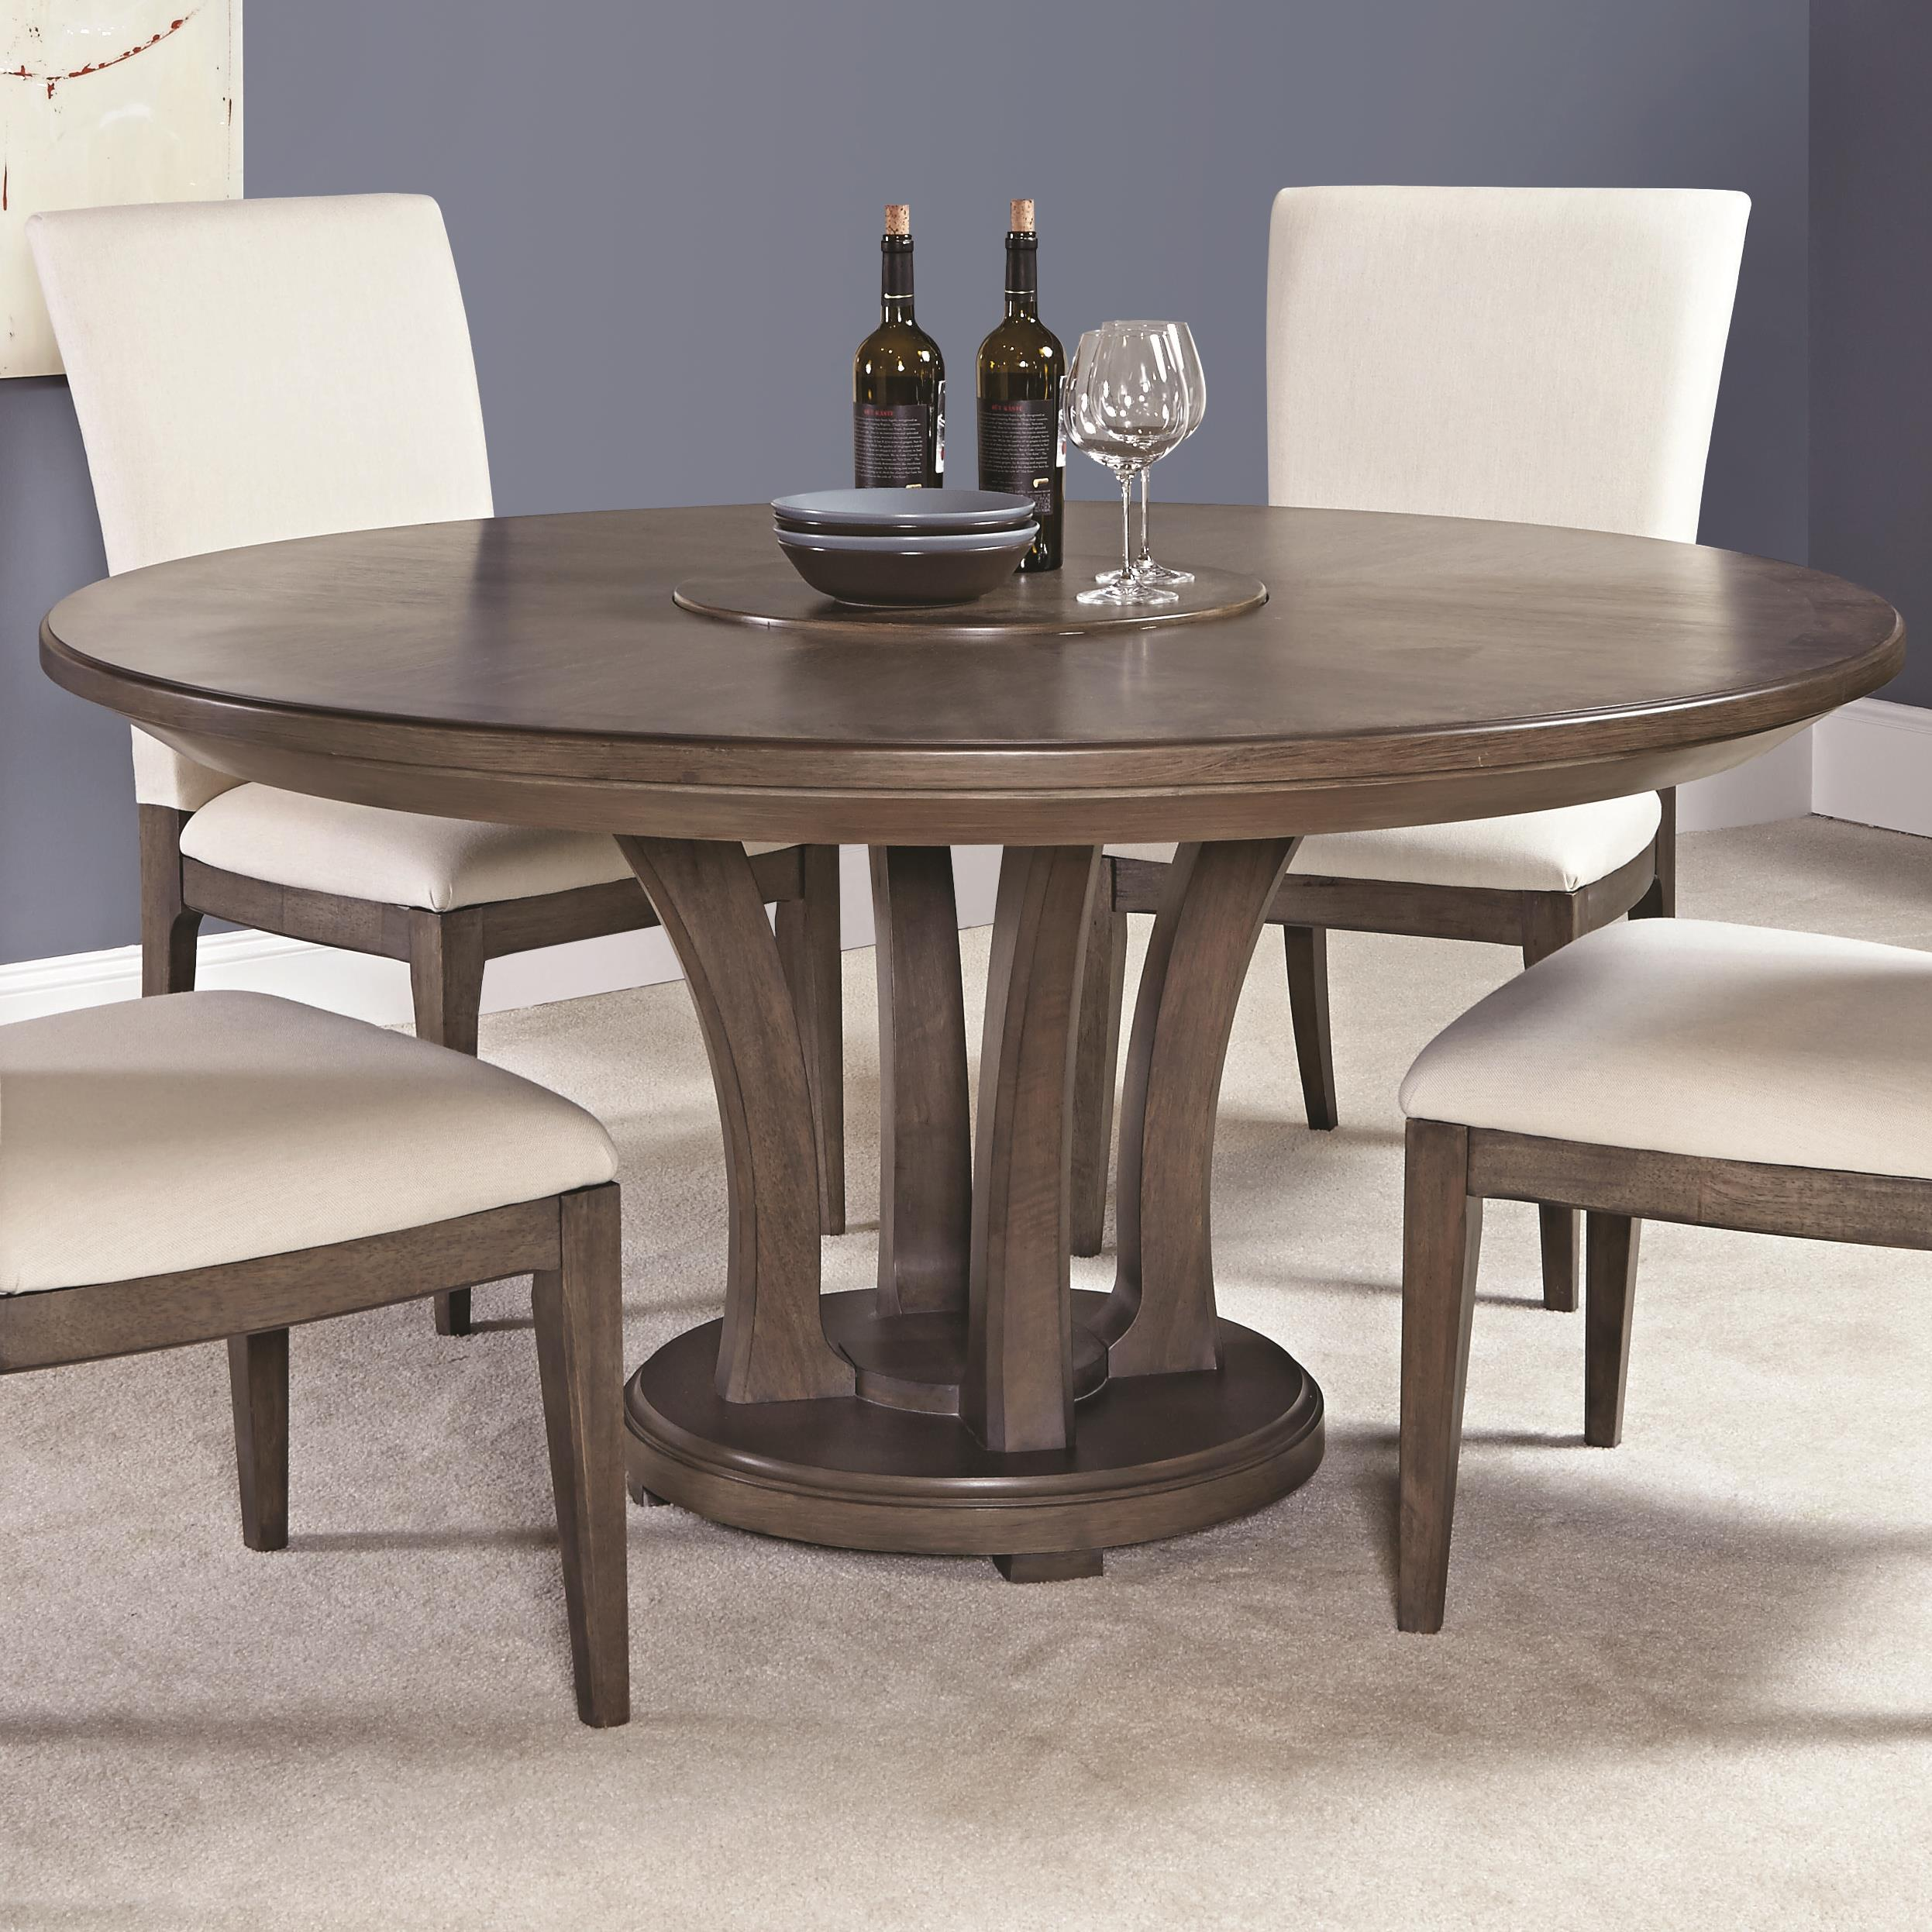 Round Kitchen Tables: American Drew Park Studio Contemporary 62-Inch Round